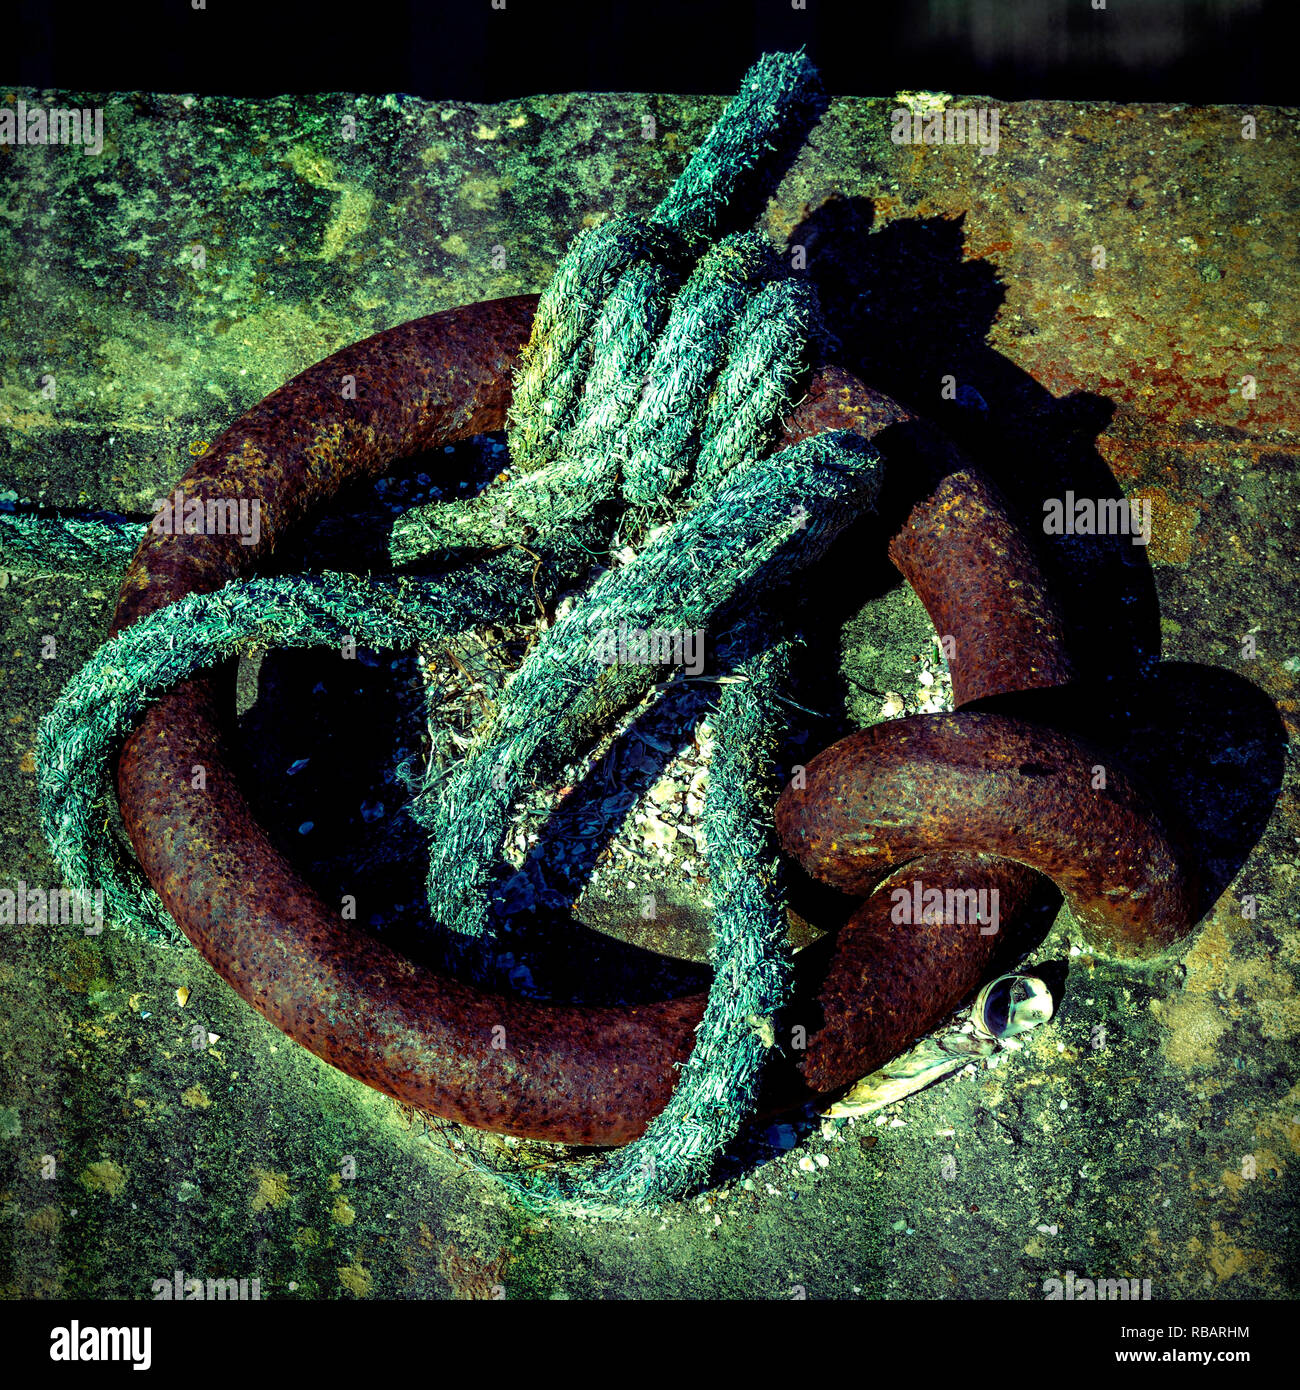 Rope tied around a rusty metal ring - Stock Image